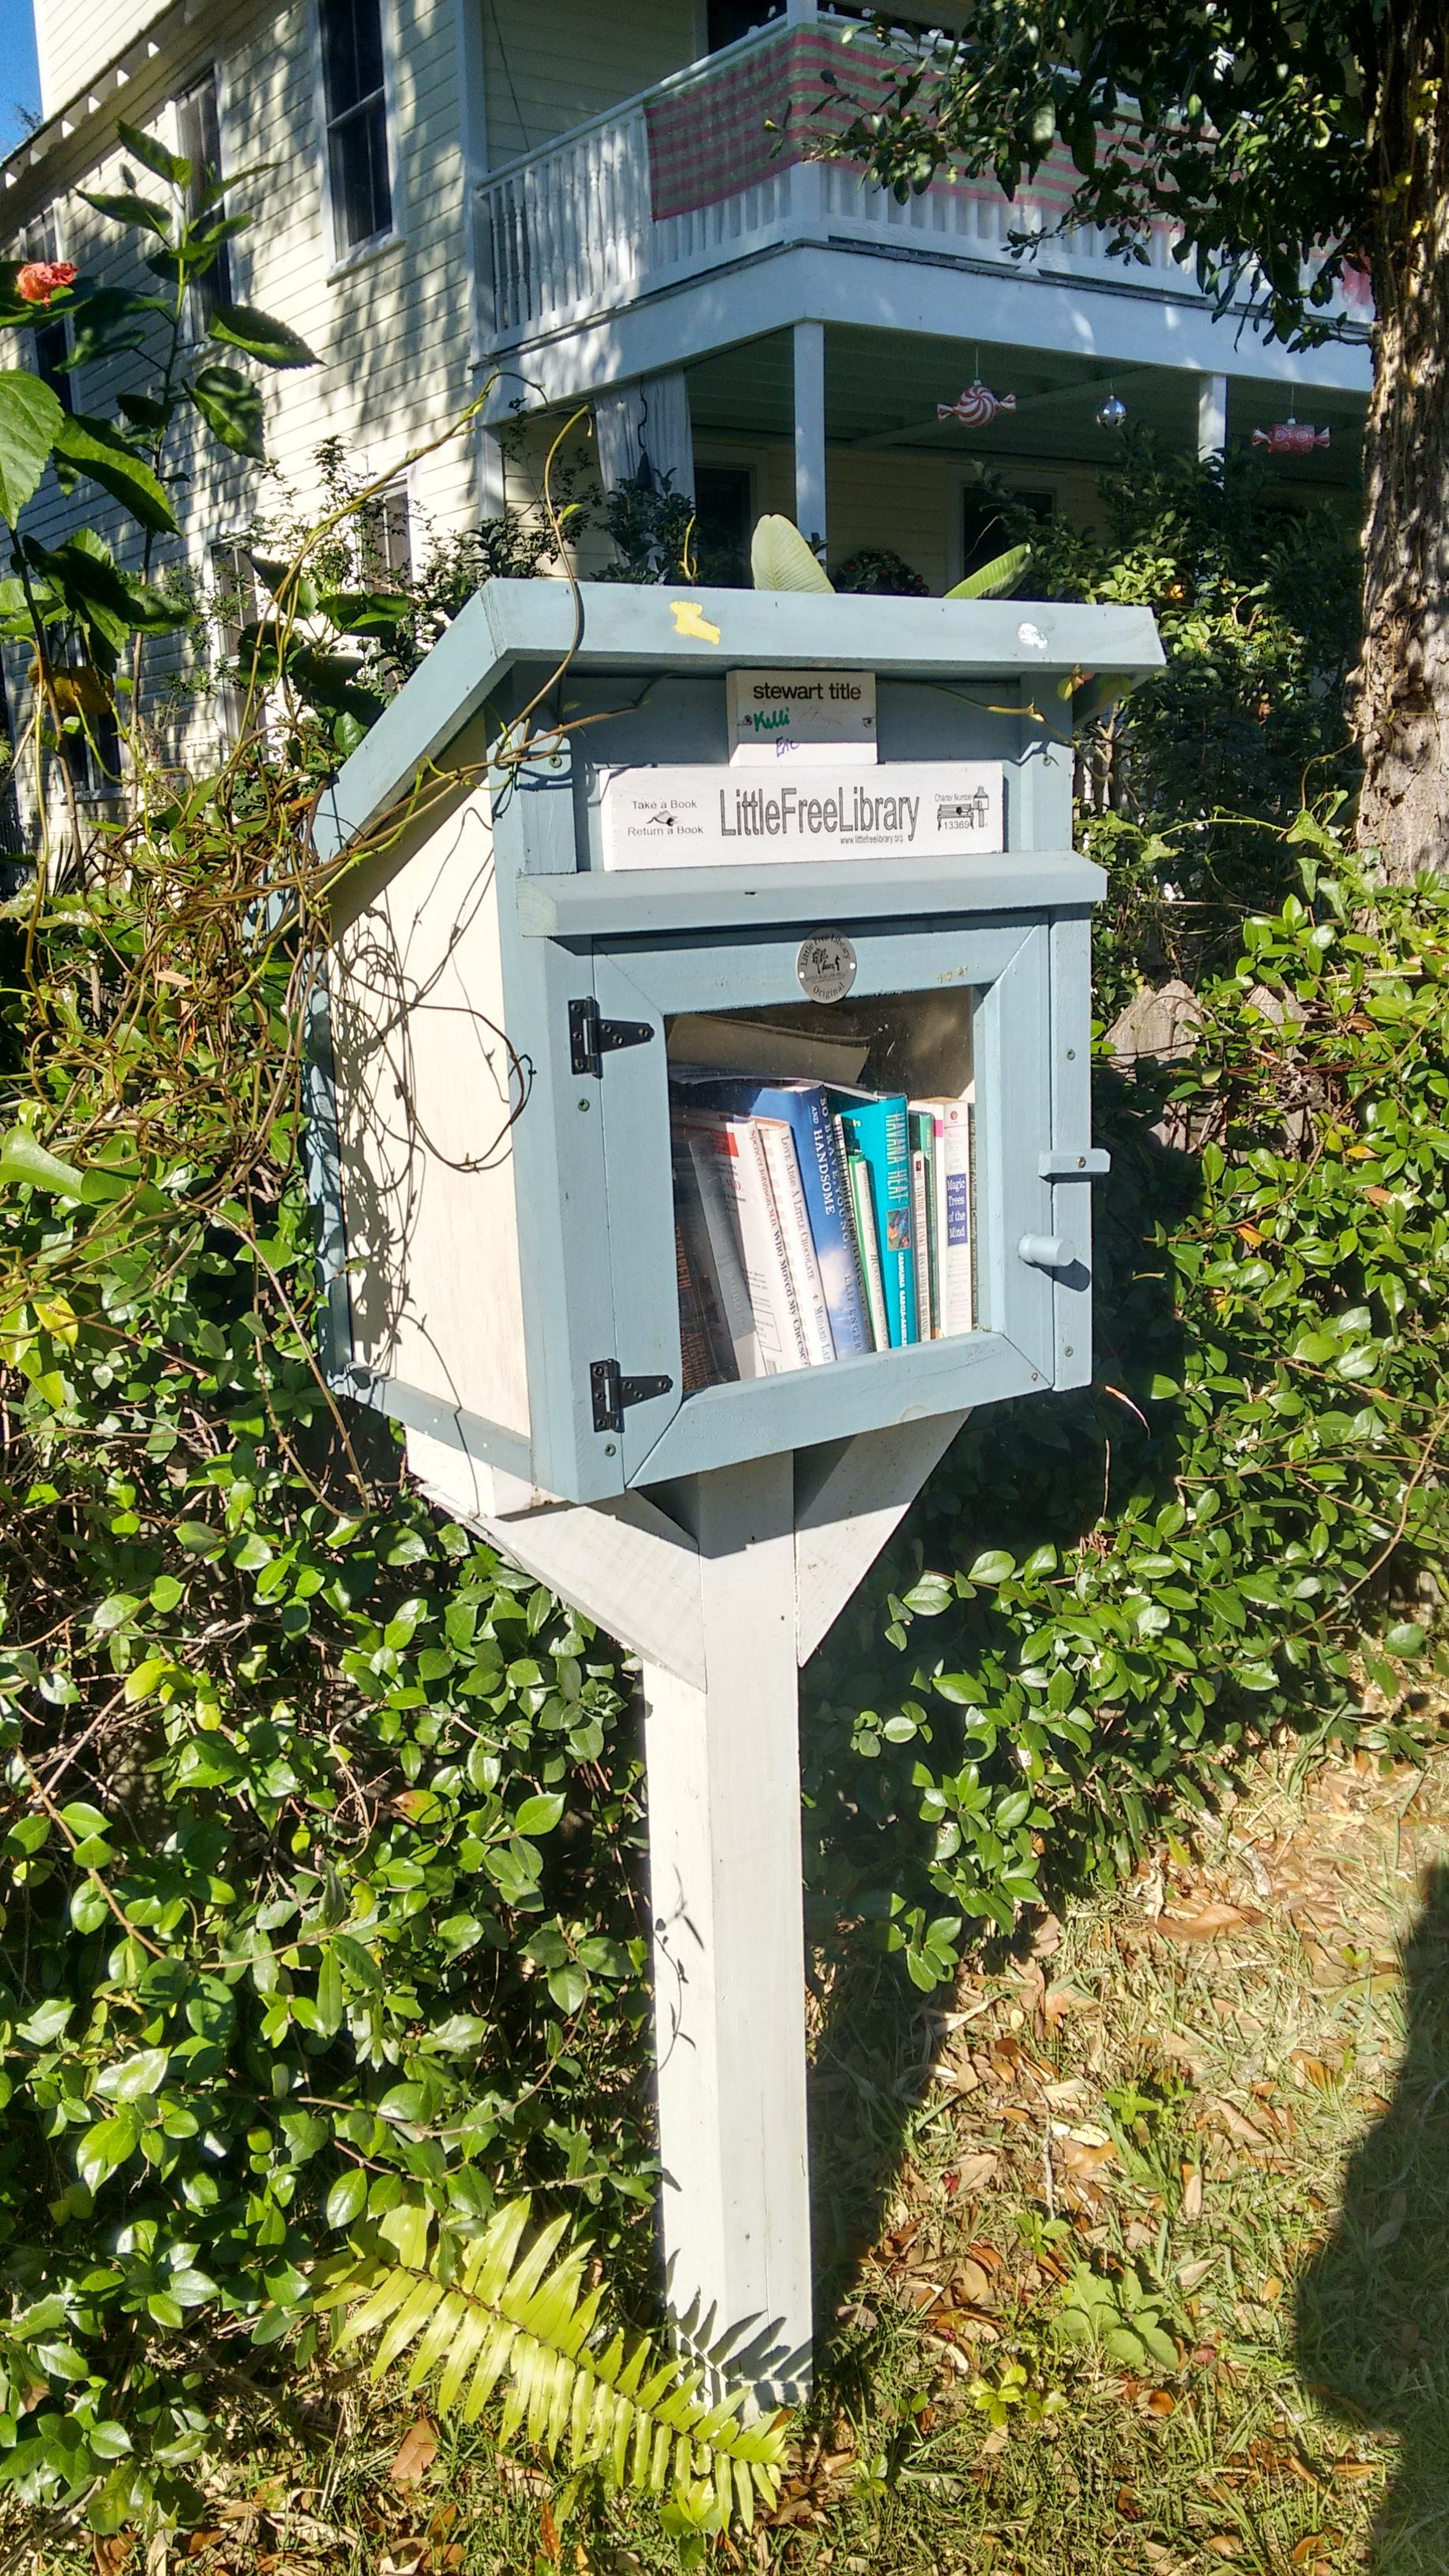 Little Free Libraries can be found in a neighborhood near you.